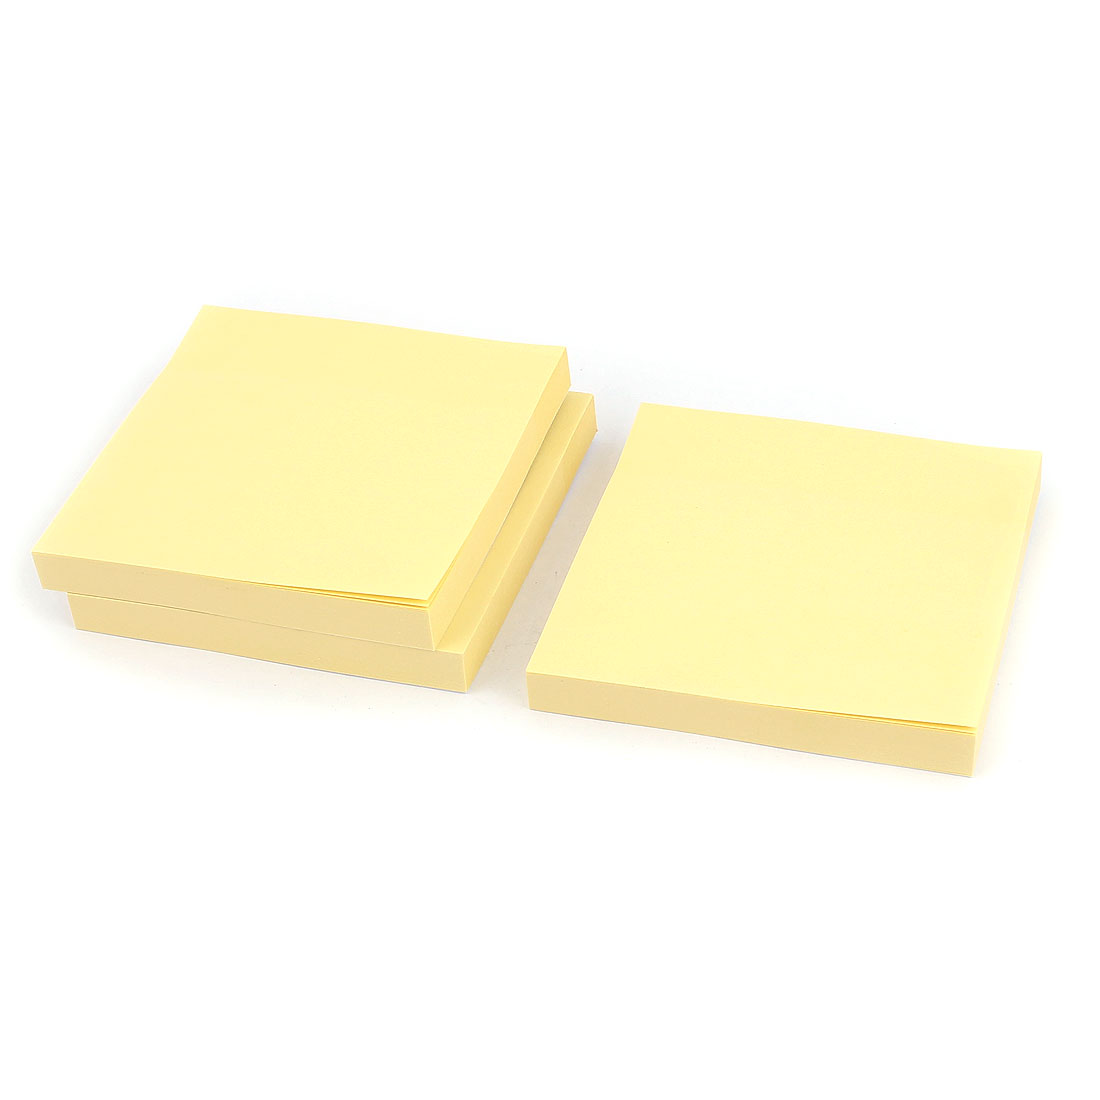 12pcs Post Sticker Bookmark Memo Pad Marker Point Tab Flags Sticky Notes Yellow